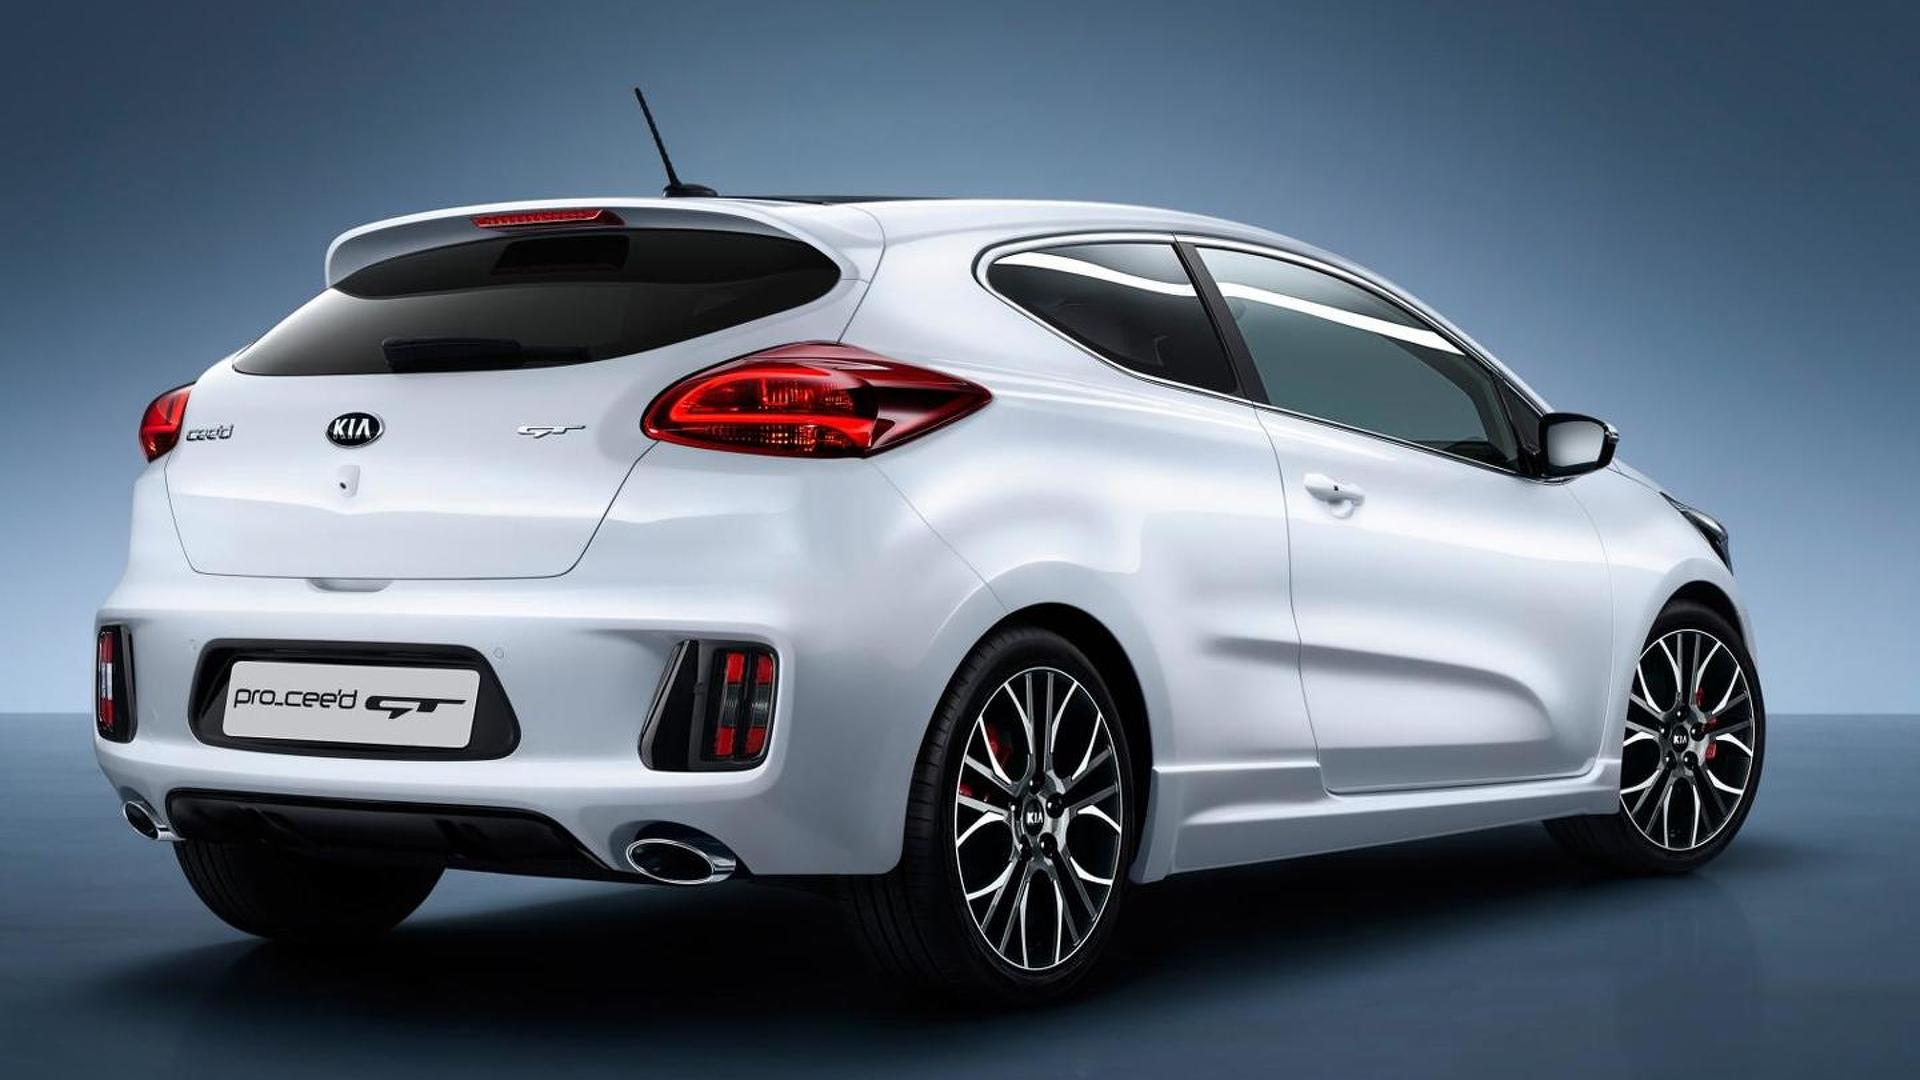 2013 Kia cee'd and pro_cee'd GT fully revealed